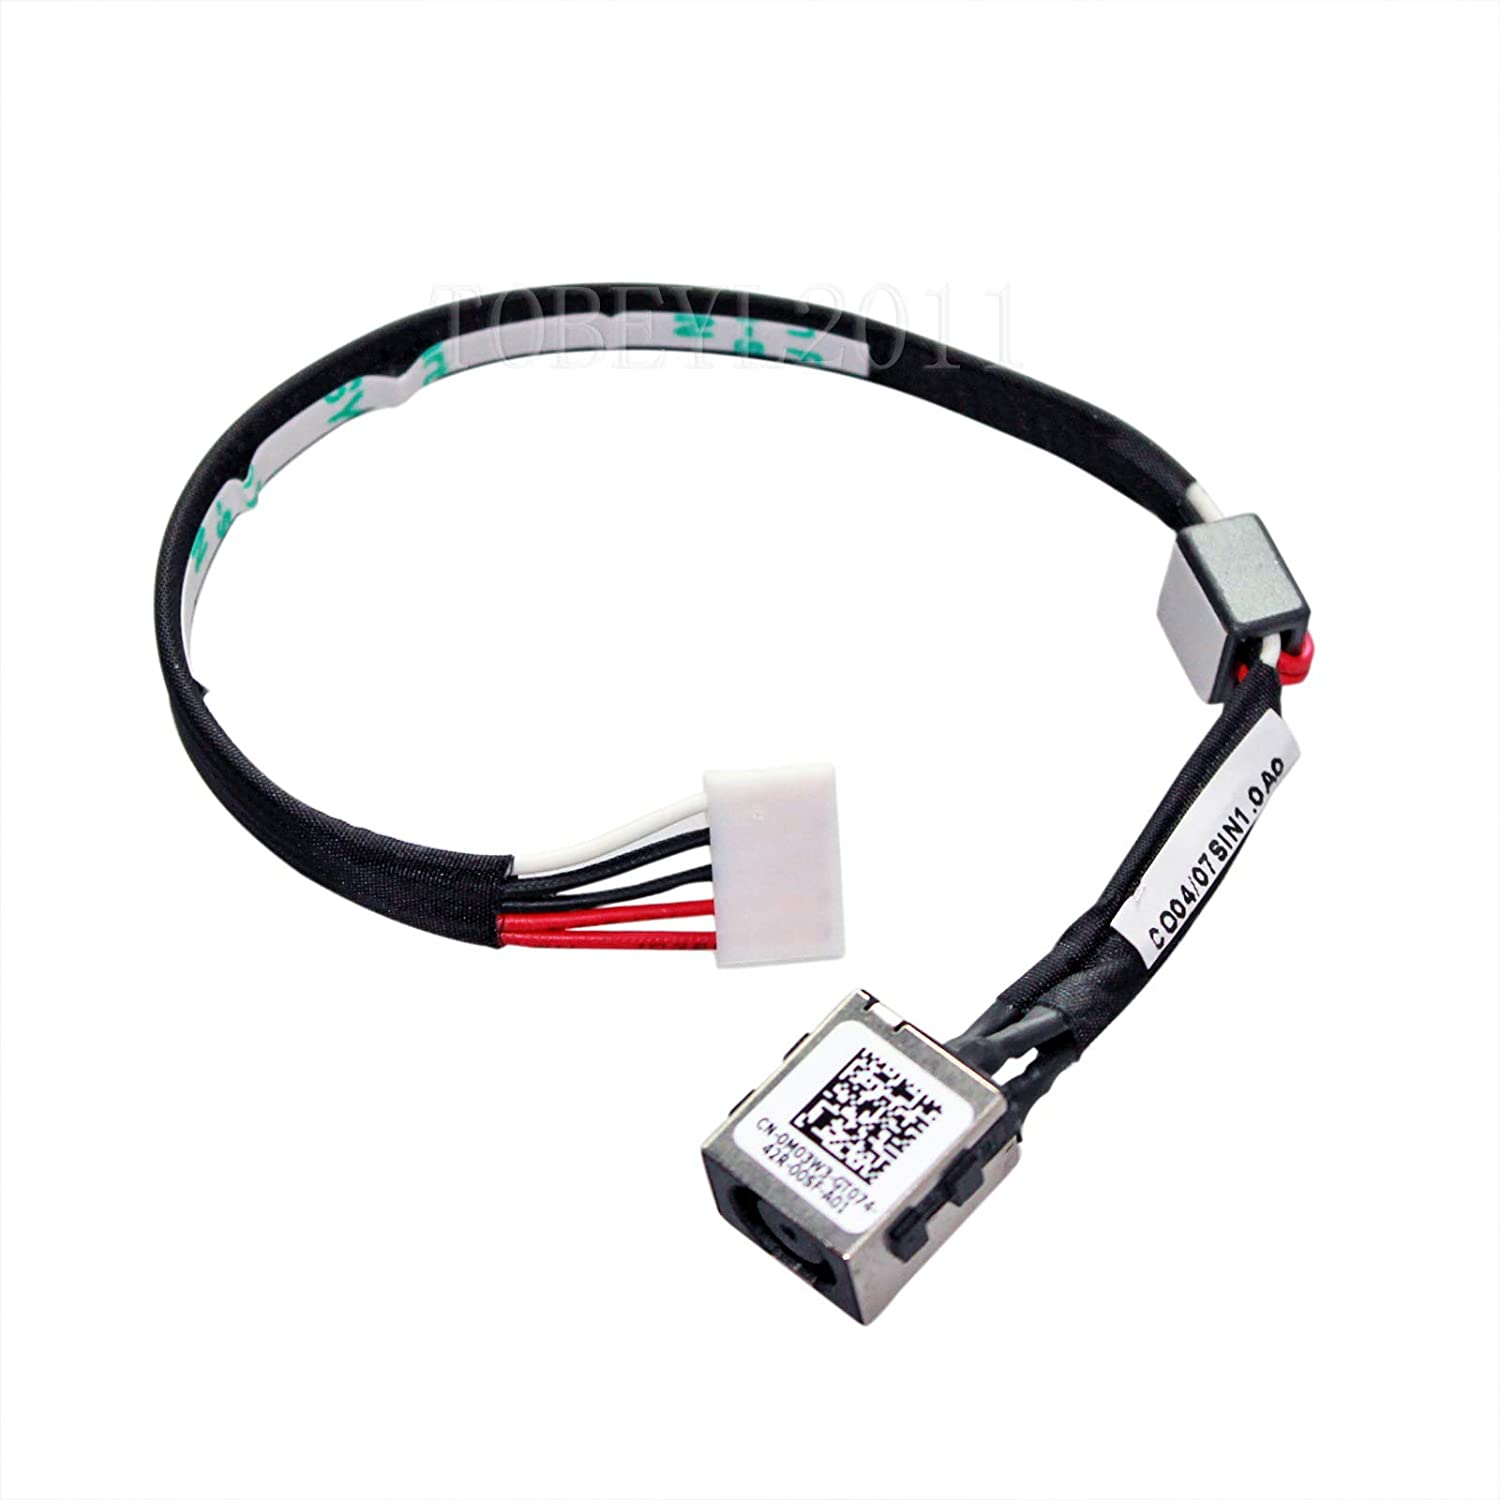 Gintai DC Power Jack Port Cable Replacement for Dell Inspiron 15-5545 15-5547 15-5548 M03W3 0M03W3 P39F